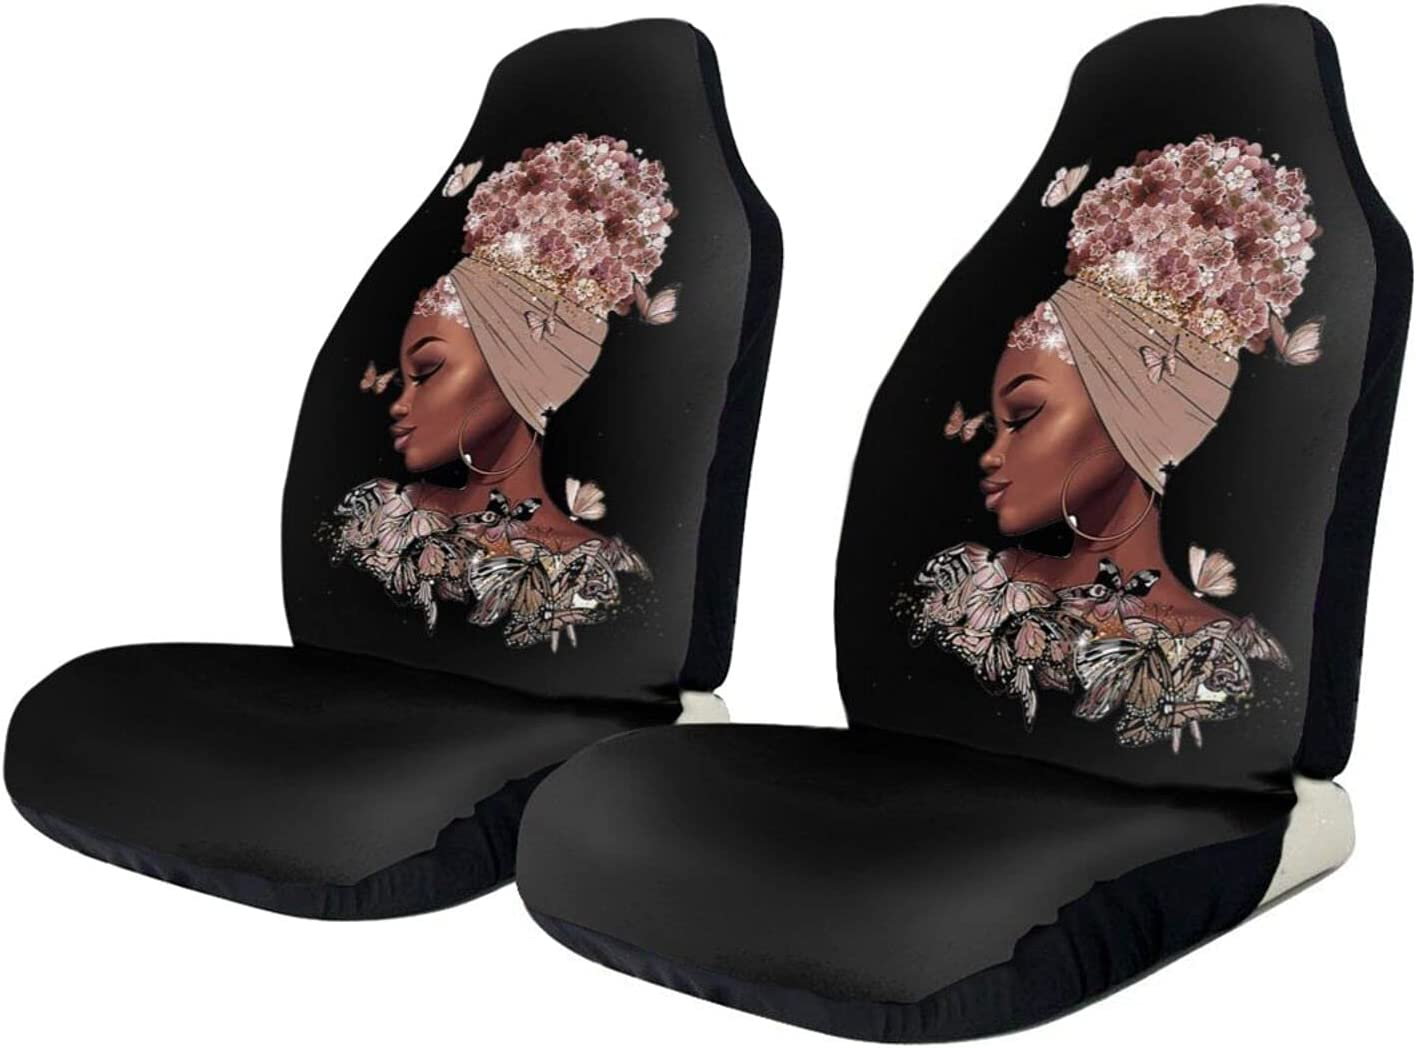 KAIYANJIXIE Afro Girl Surprise price Magic with Flowers Car Pro Cover Rapid rise Hair Seat